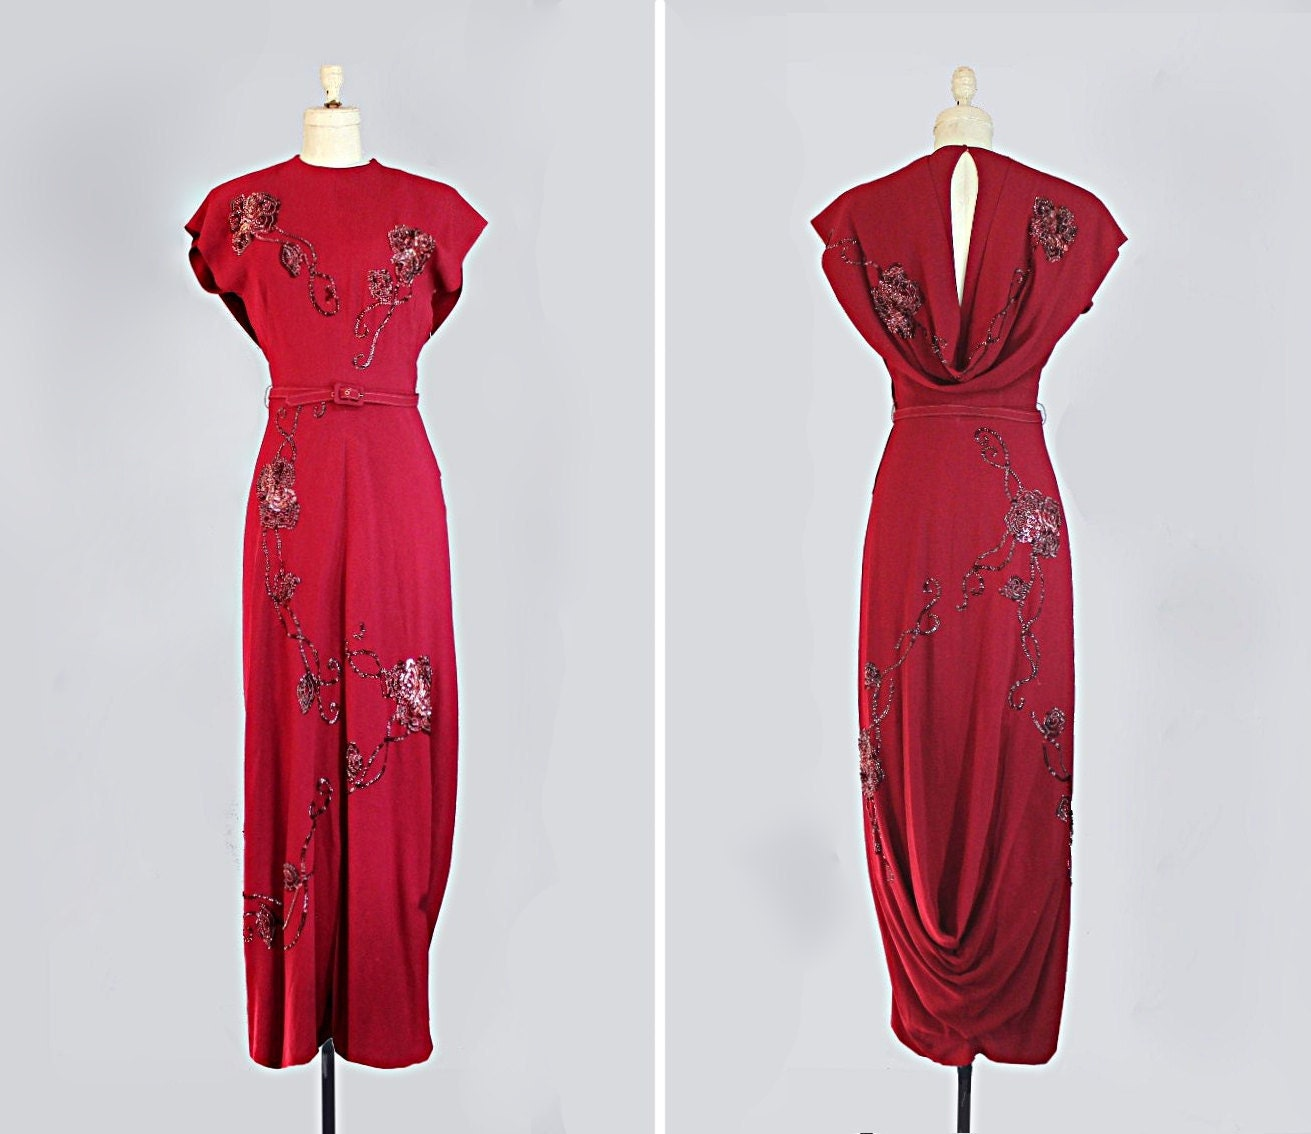 1940s Dressing Gown: Vintage 1940s Dress // 40s Evening Gown // Sequined & Draped